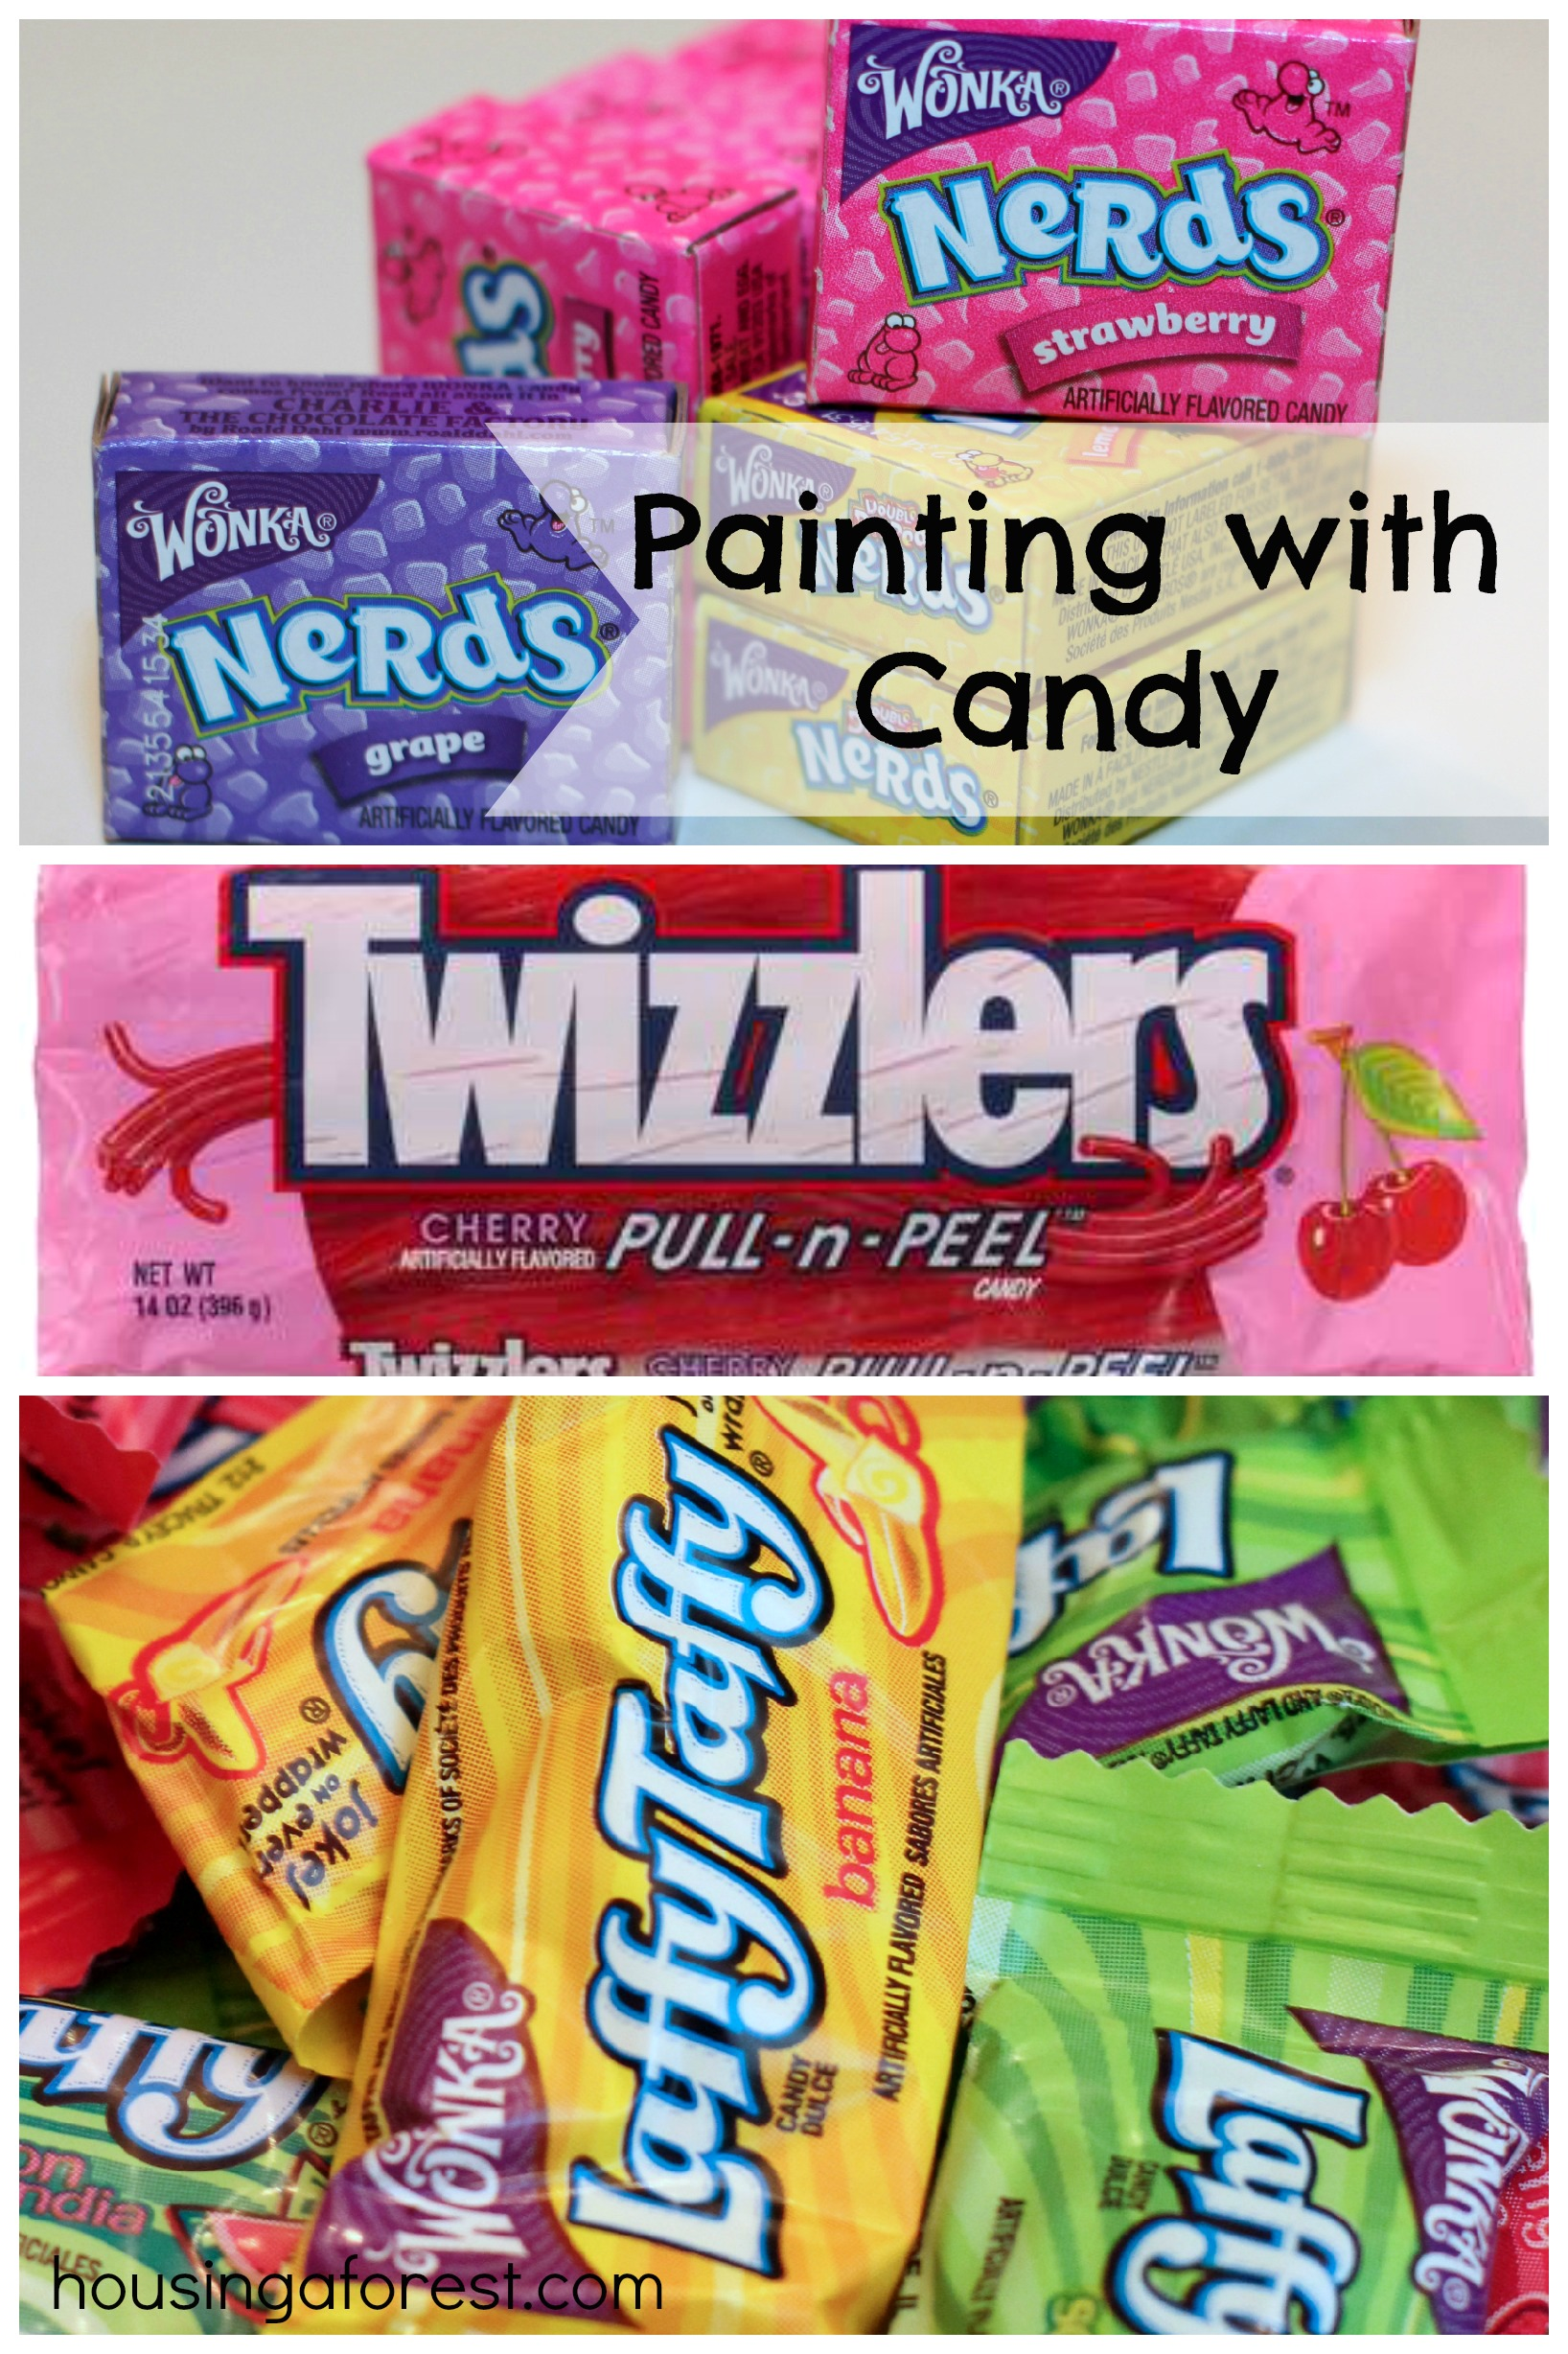 Painting with Candy